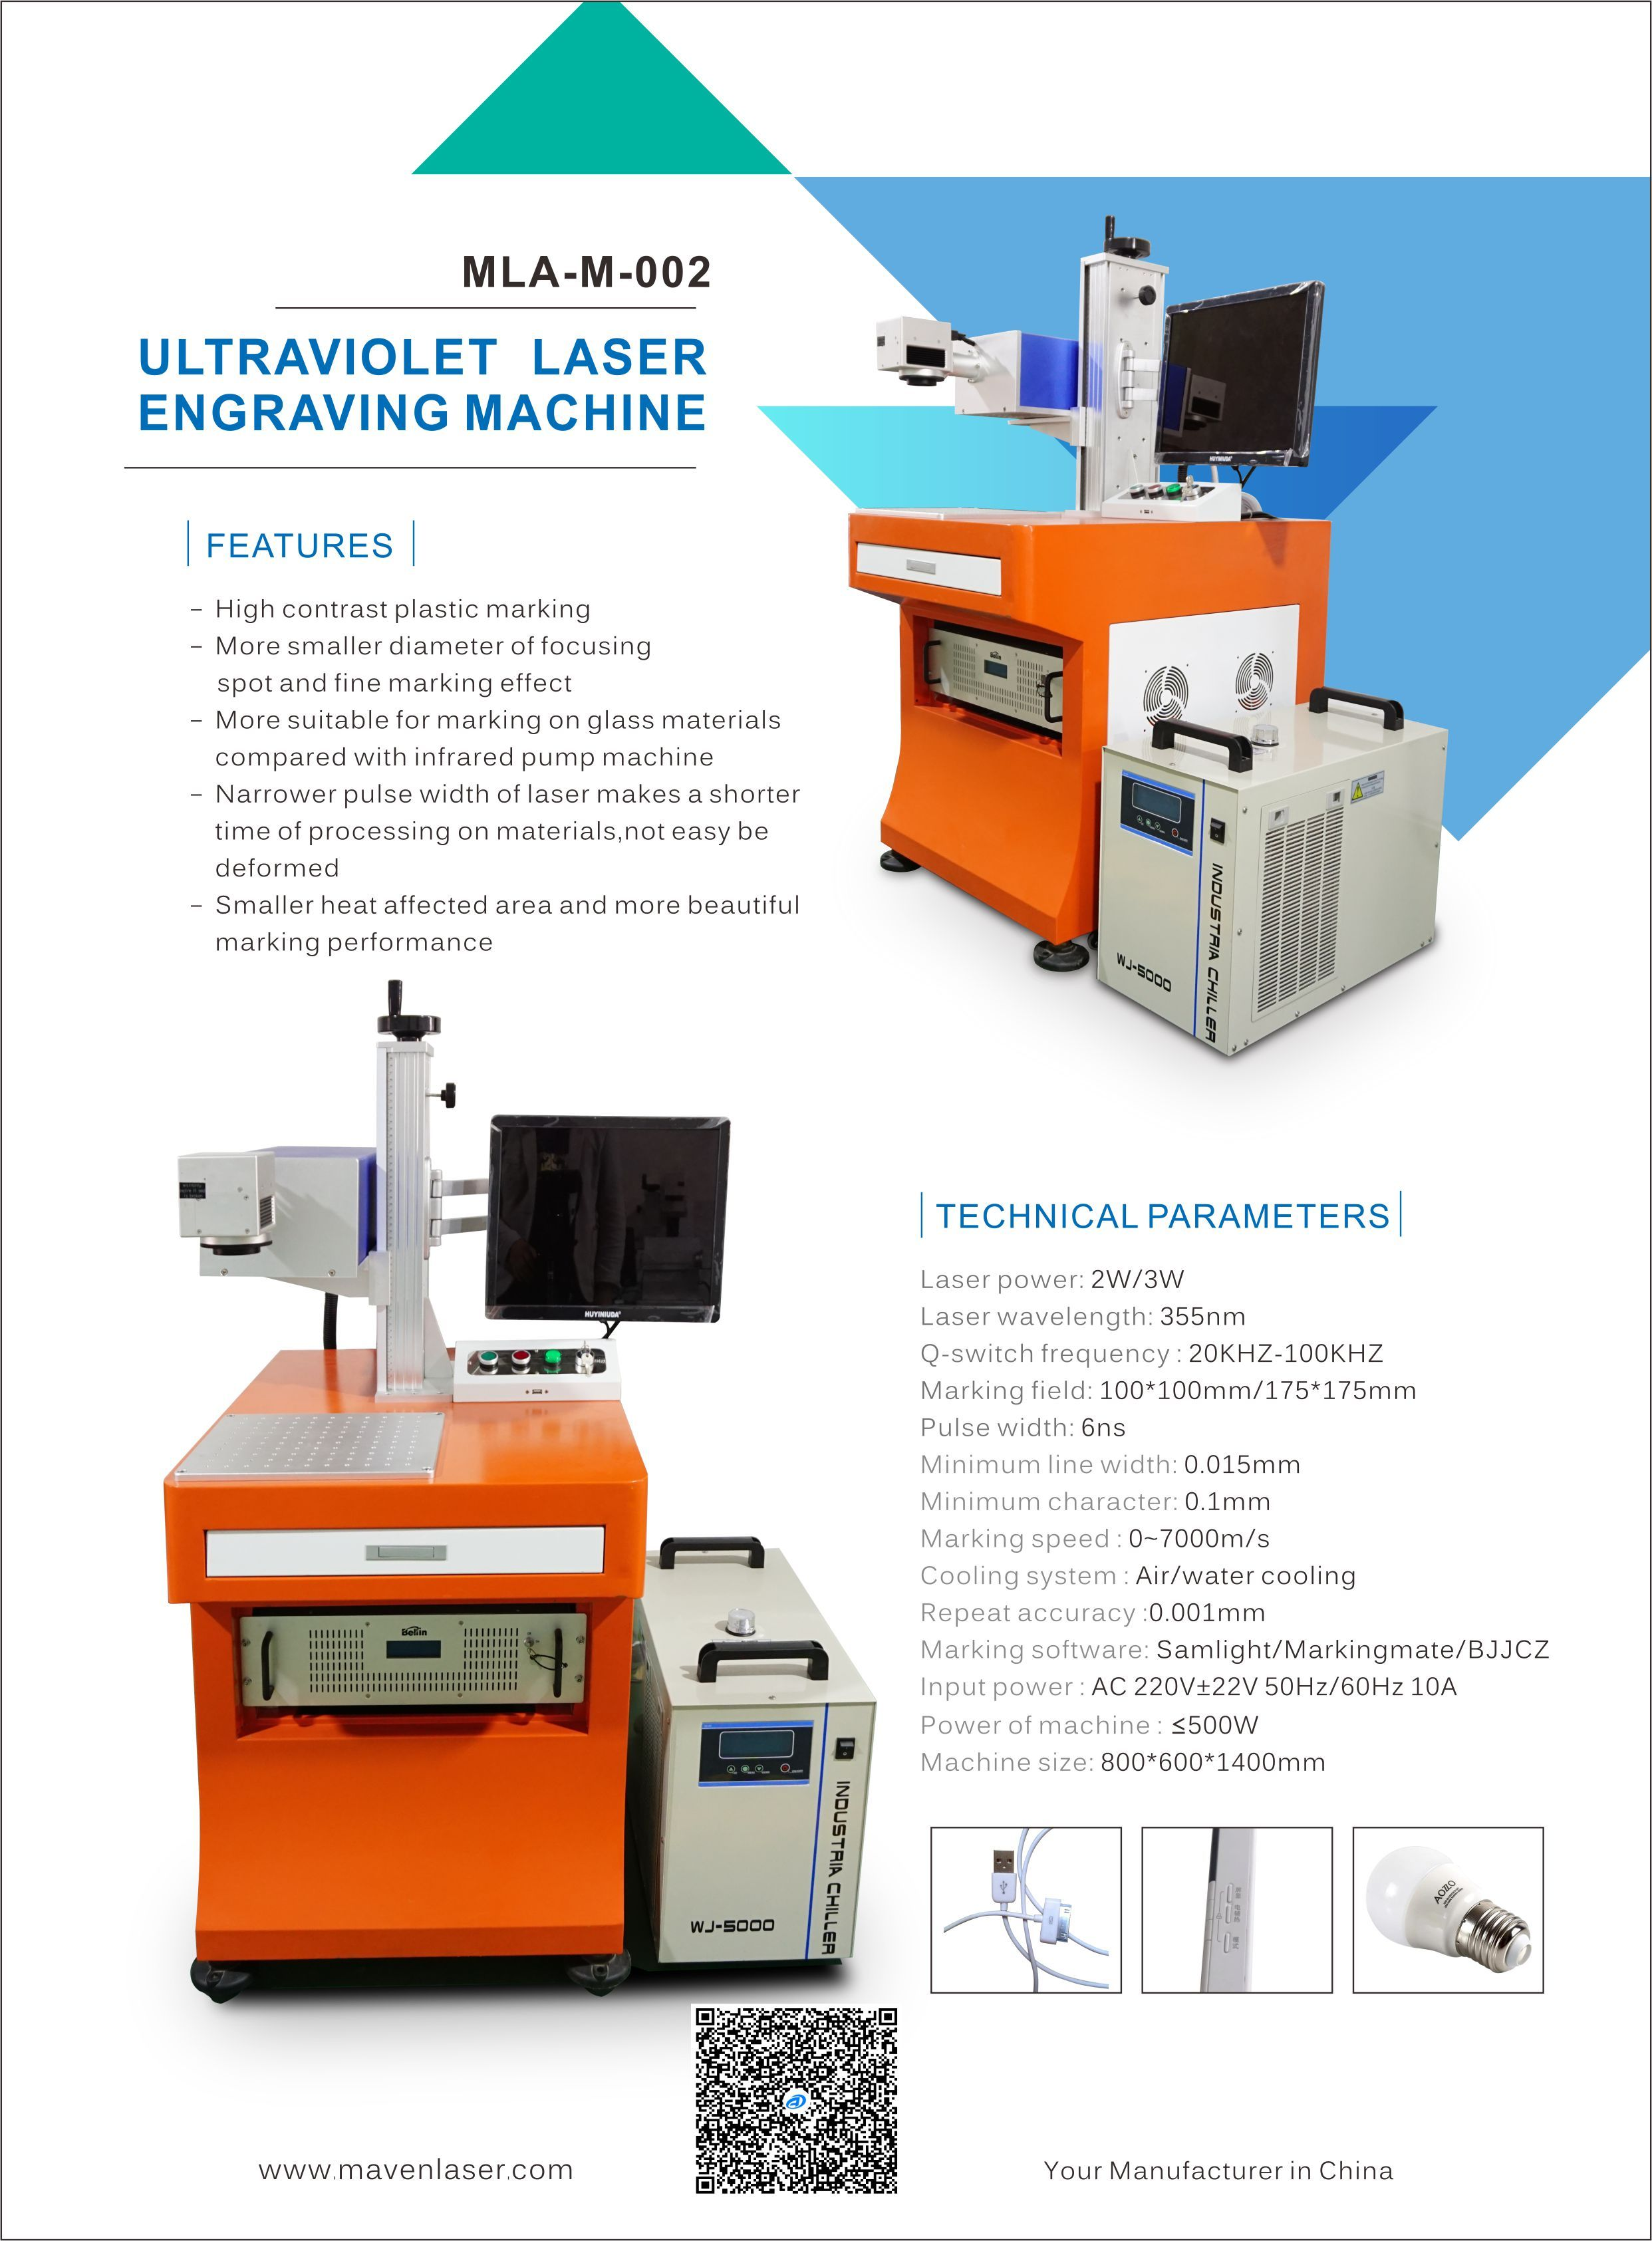 Catalog and pdf version of uv laser marking machine by